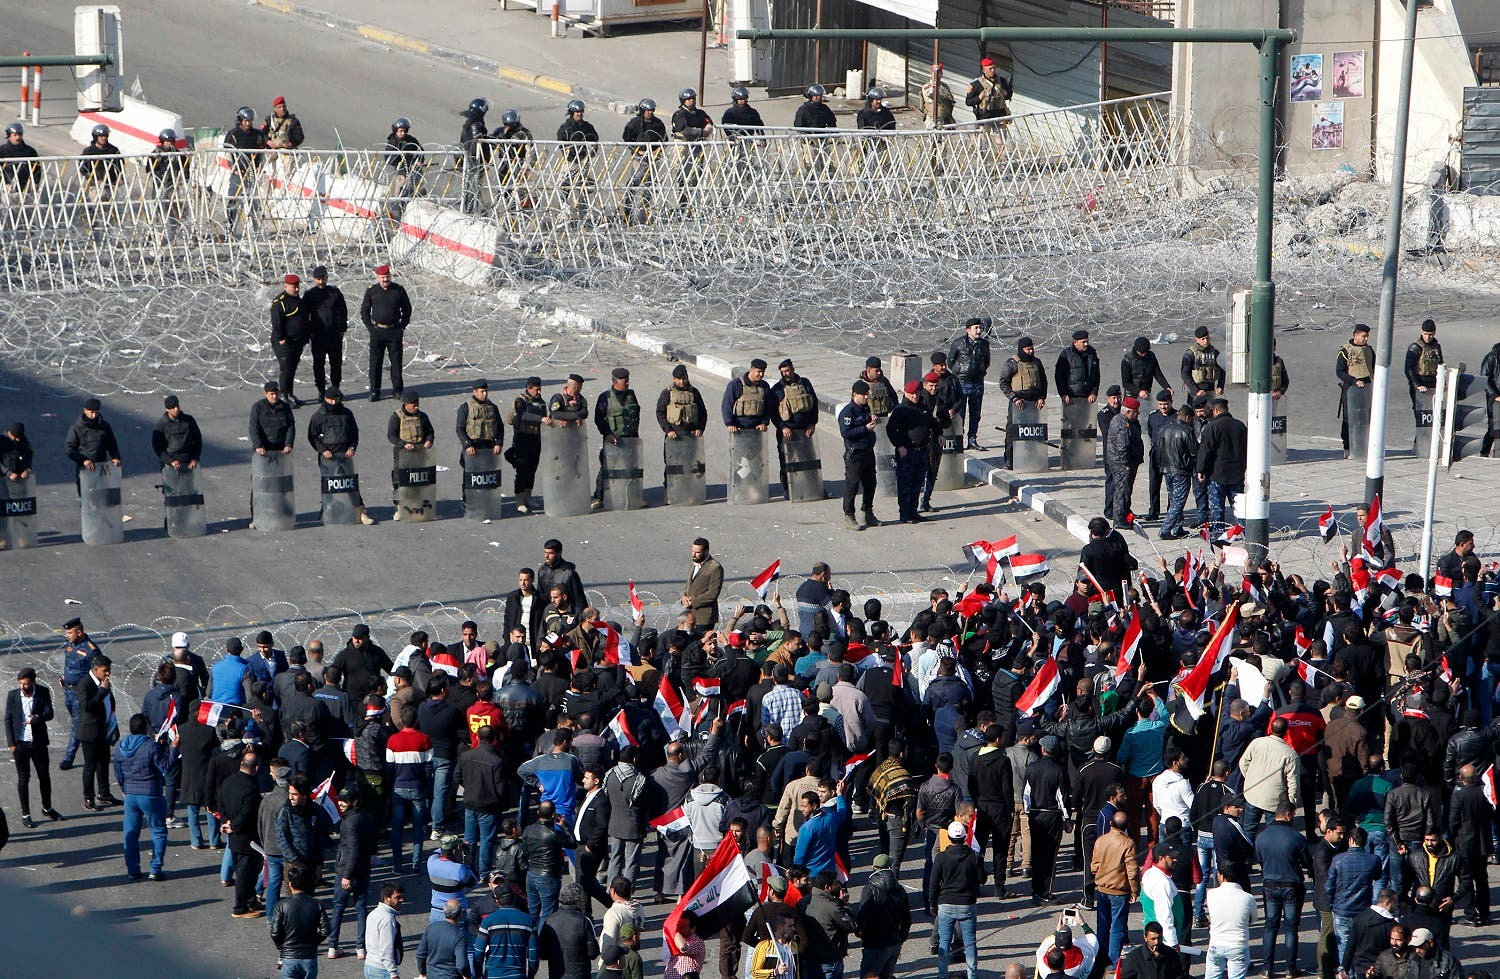 Iraqi security forces stand guard as supporters of the Sadrist movement gather during a demonstration in Baghdad. (AFP)